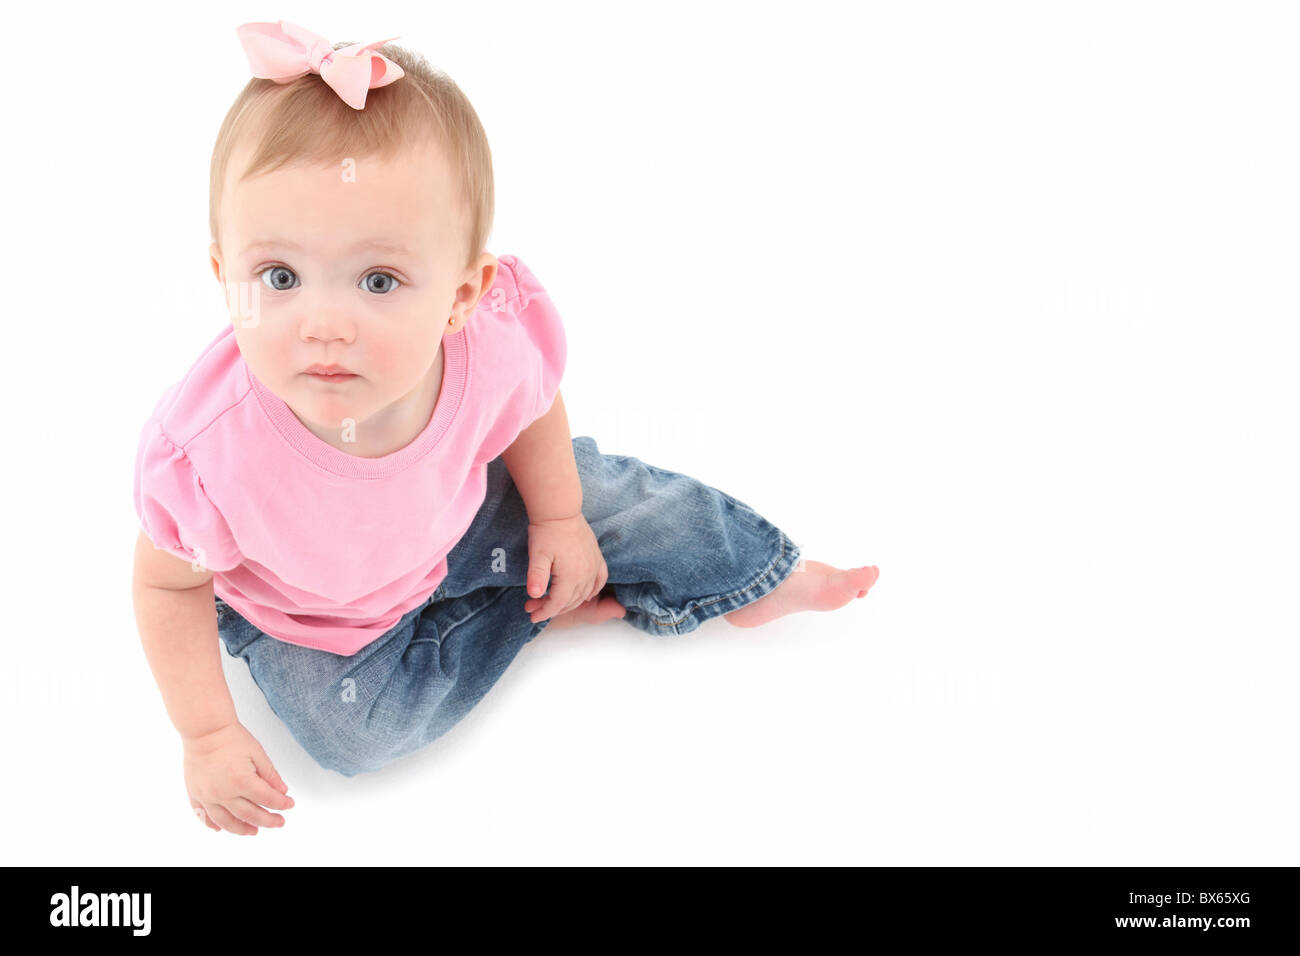 Adorable 10 month old baby girl sitting and looking up at camera over white. - Stock Image